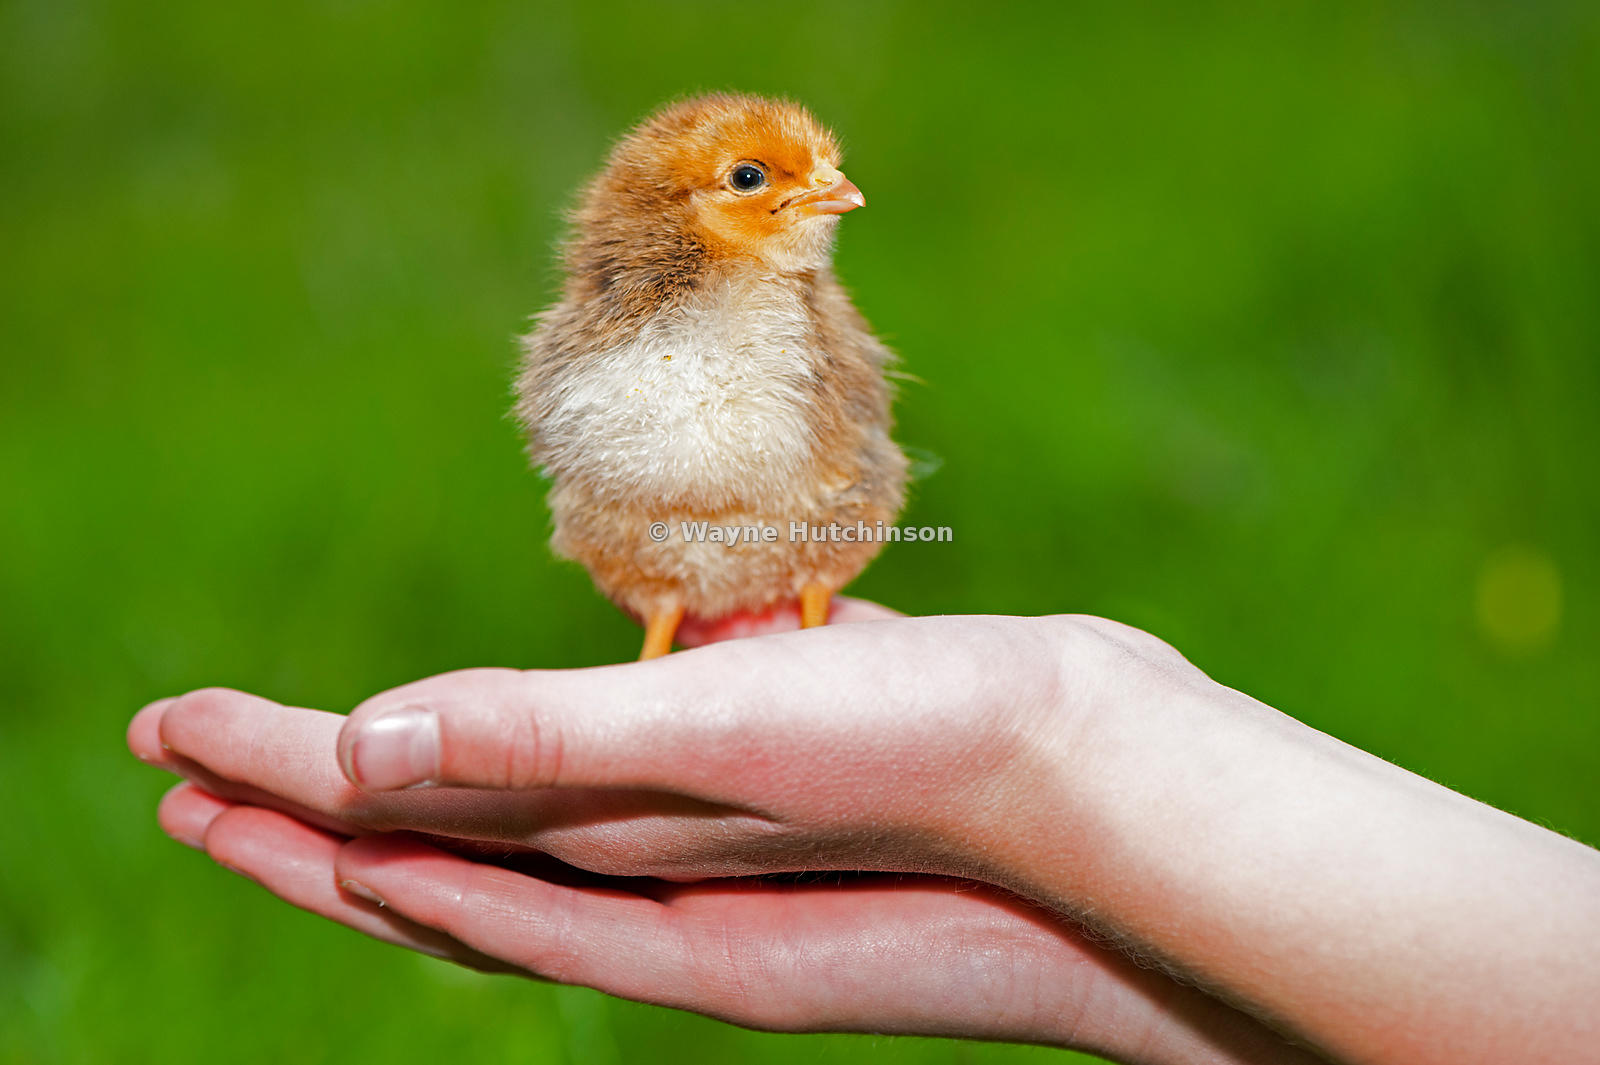 Day old poultry chick being held in a childs hand.